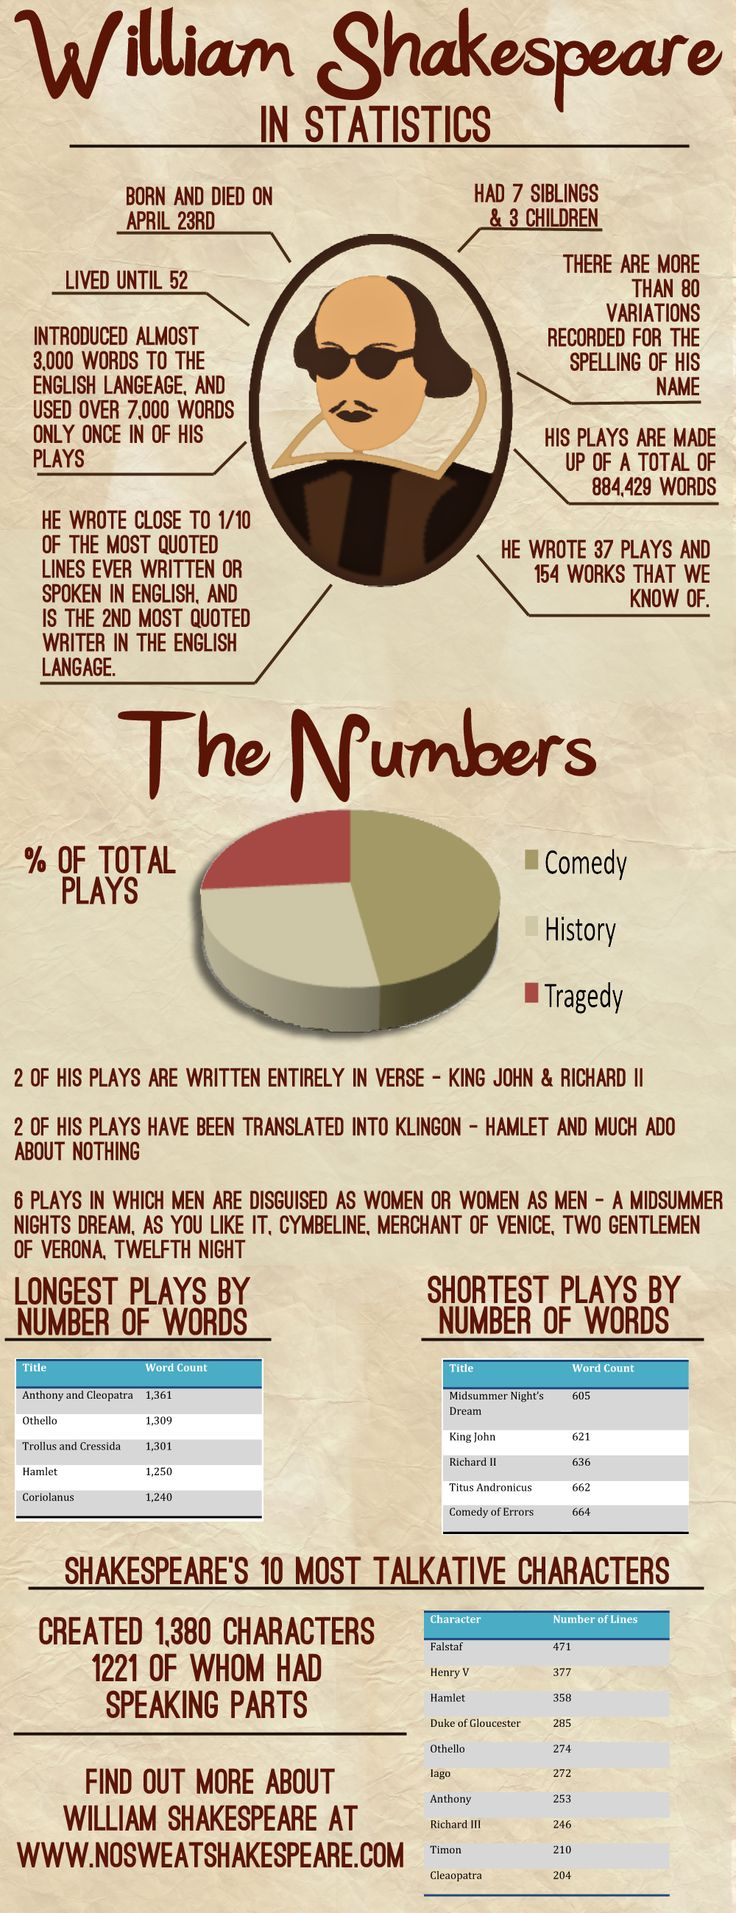 Shakespeare in statistics infografic